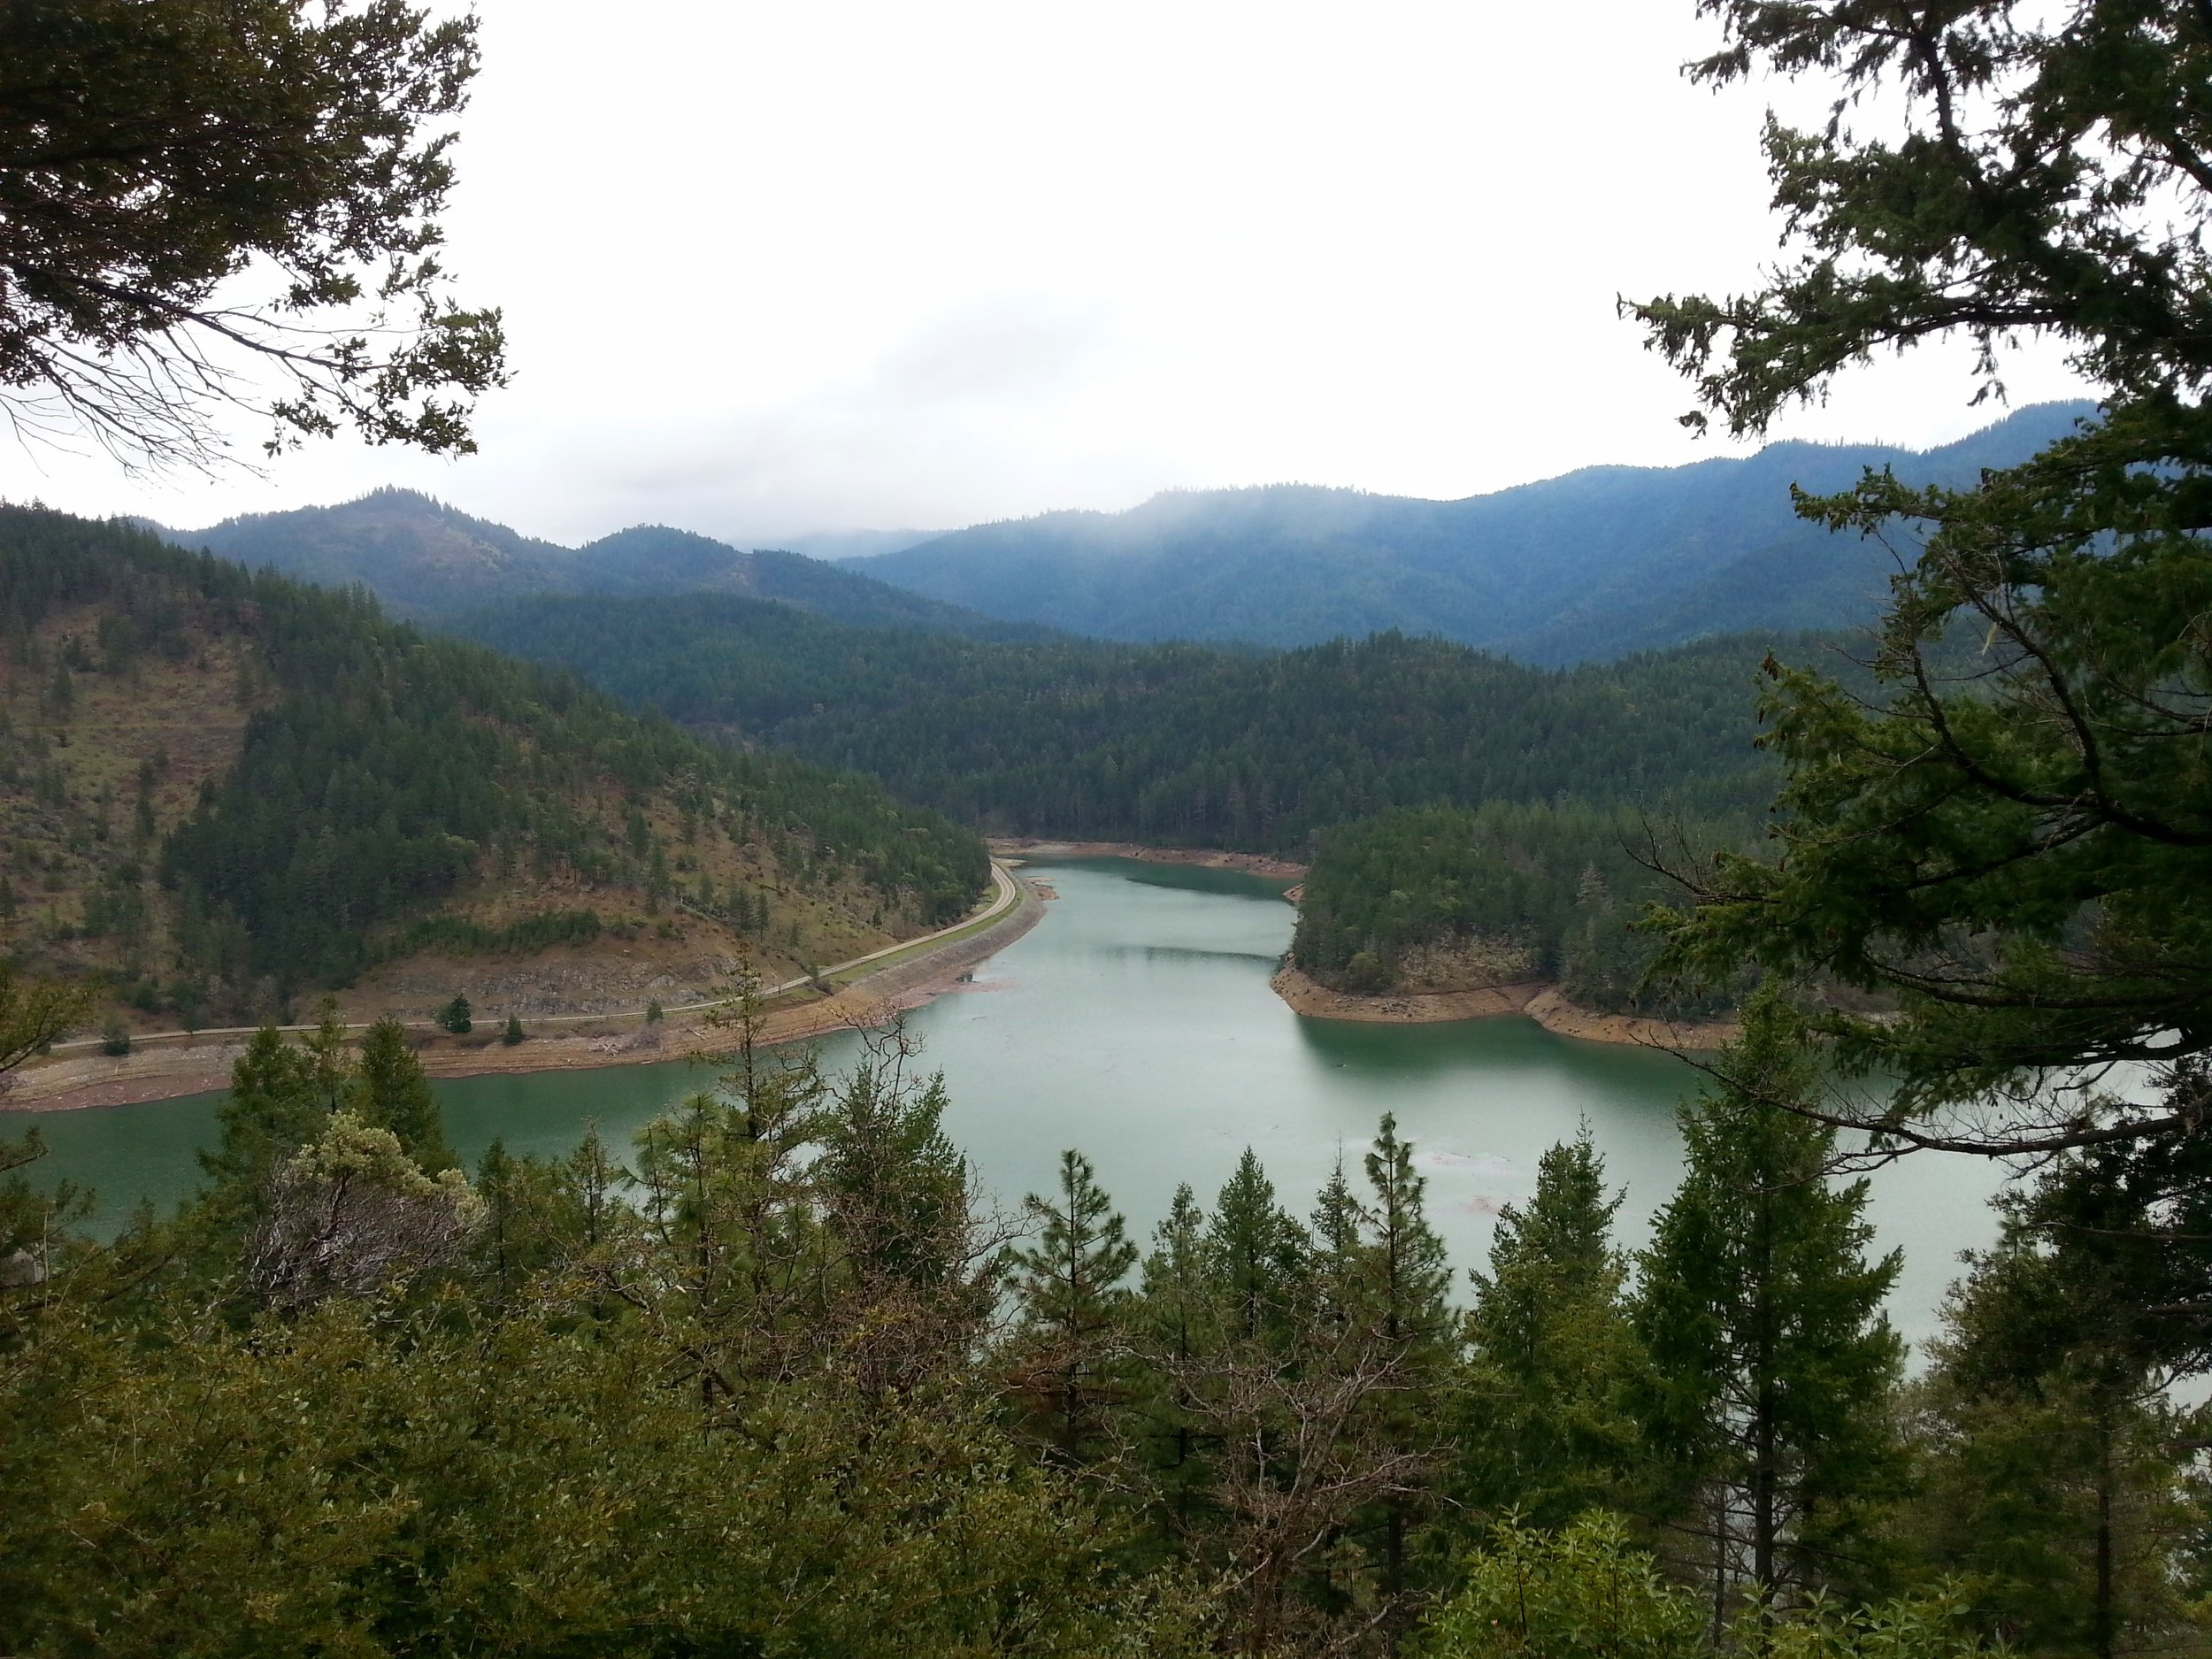 GROUSE LOOP TRAIL - What to do in Southern Oregon - Things to do - Hiking - Kids - Applegate - Jacksonville - Applegate Lake